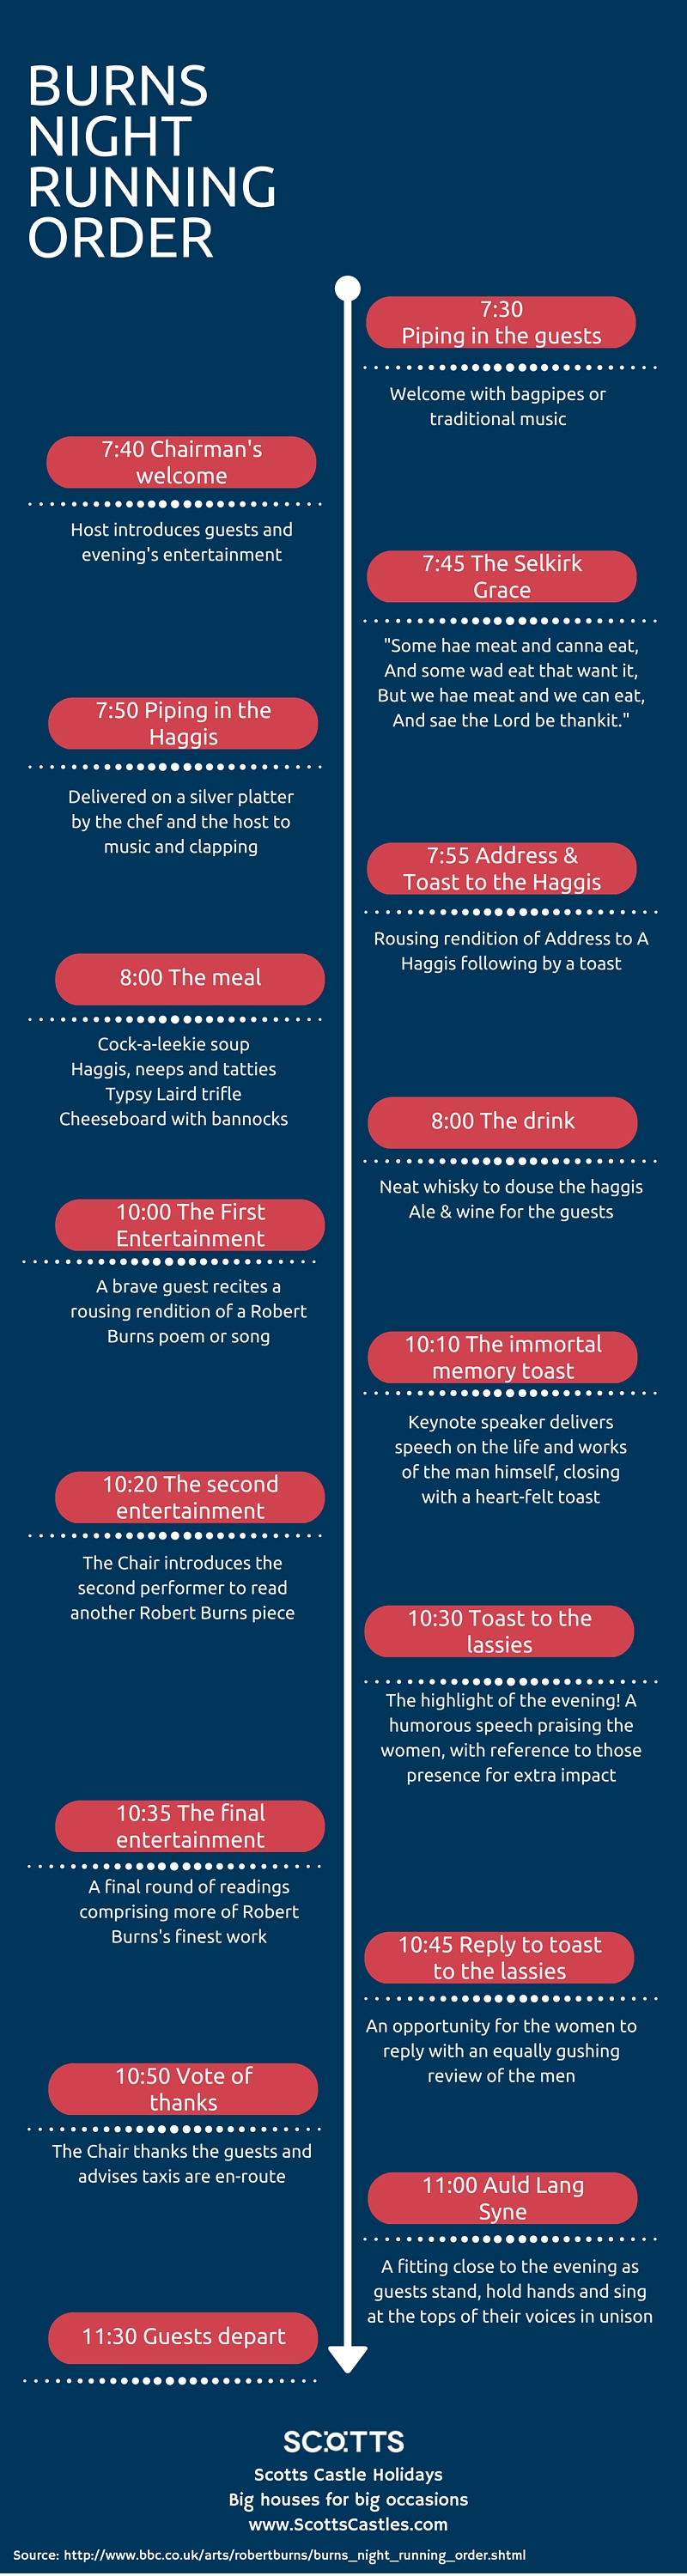 Burns Night infographic